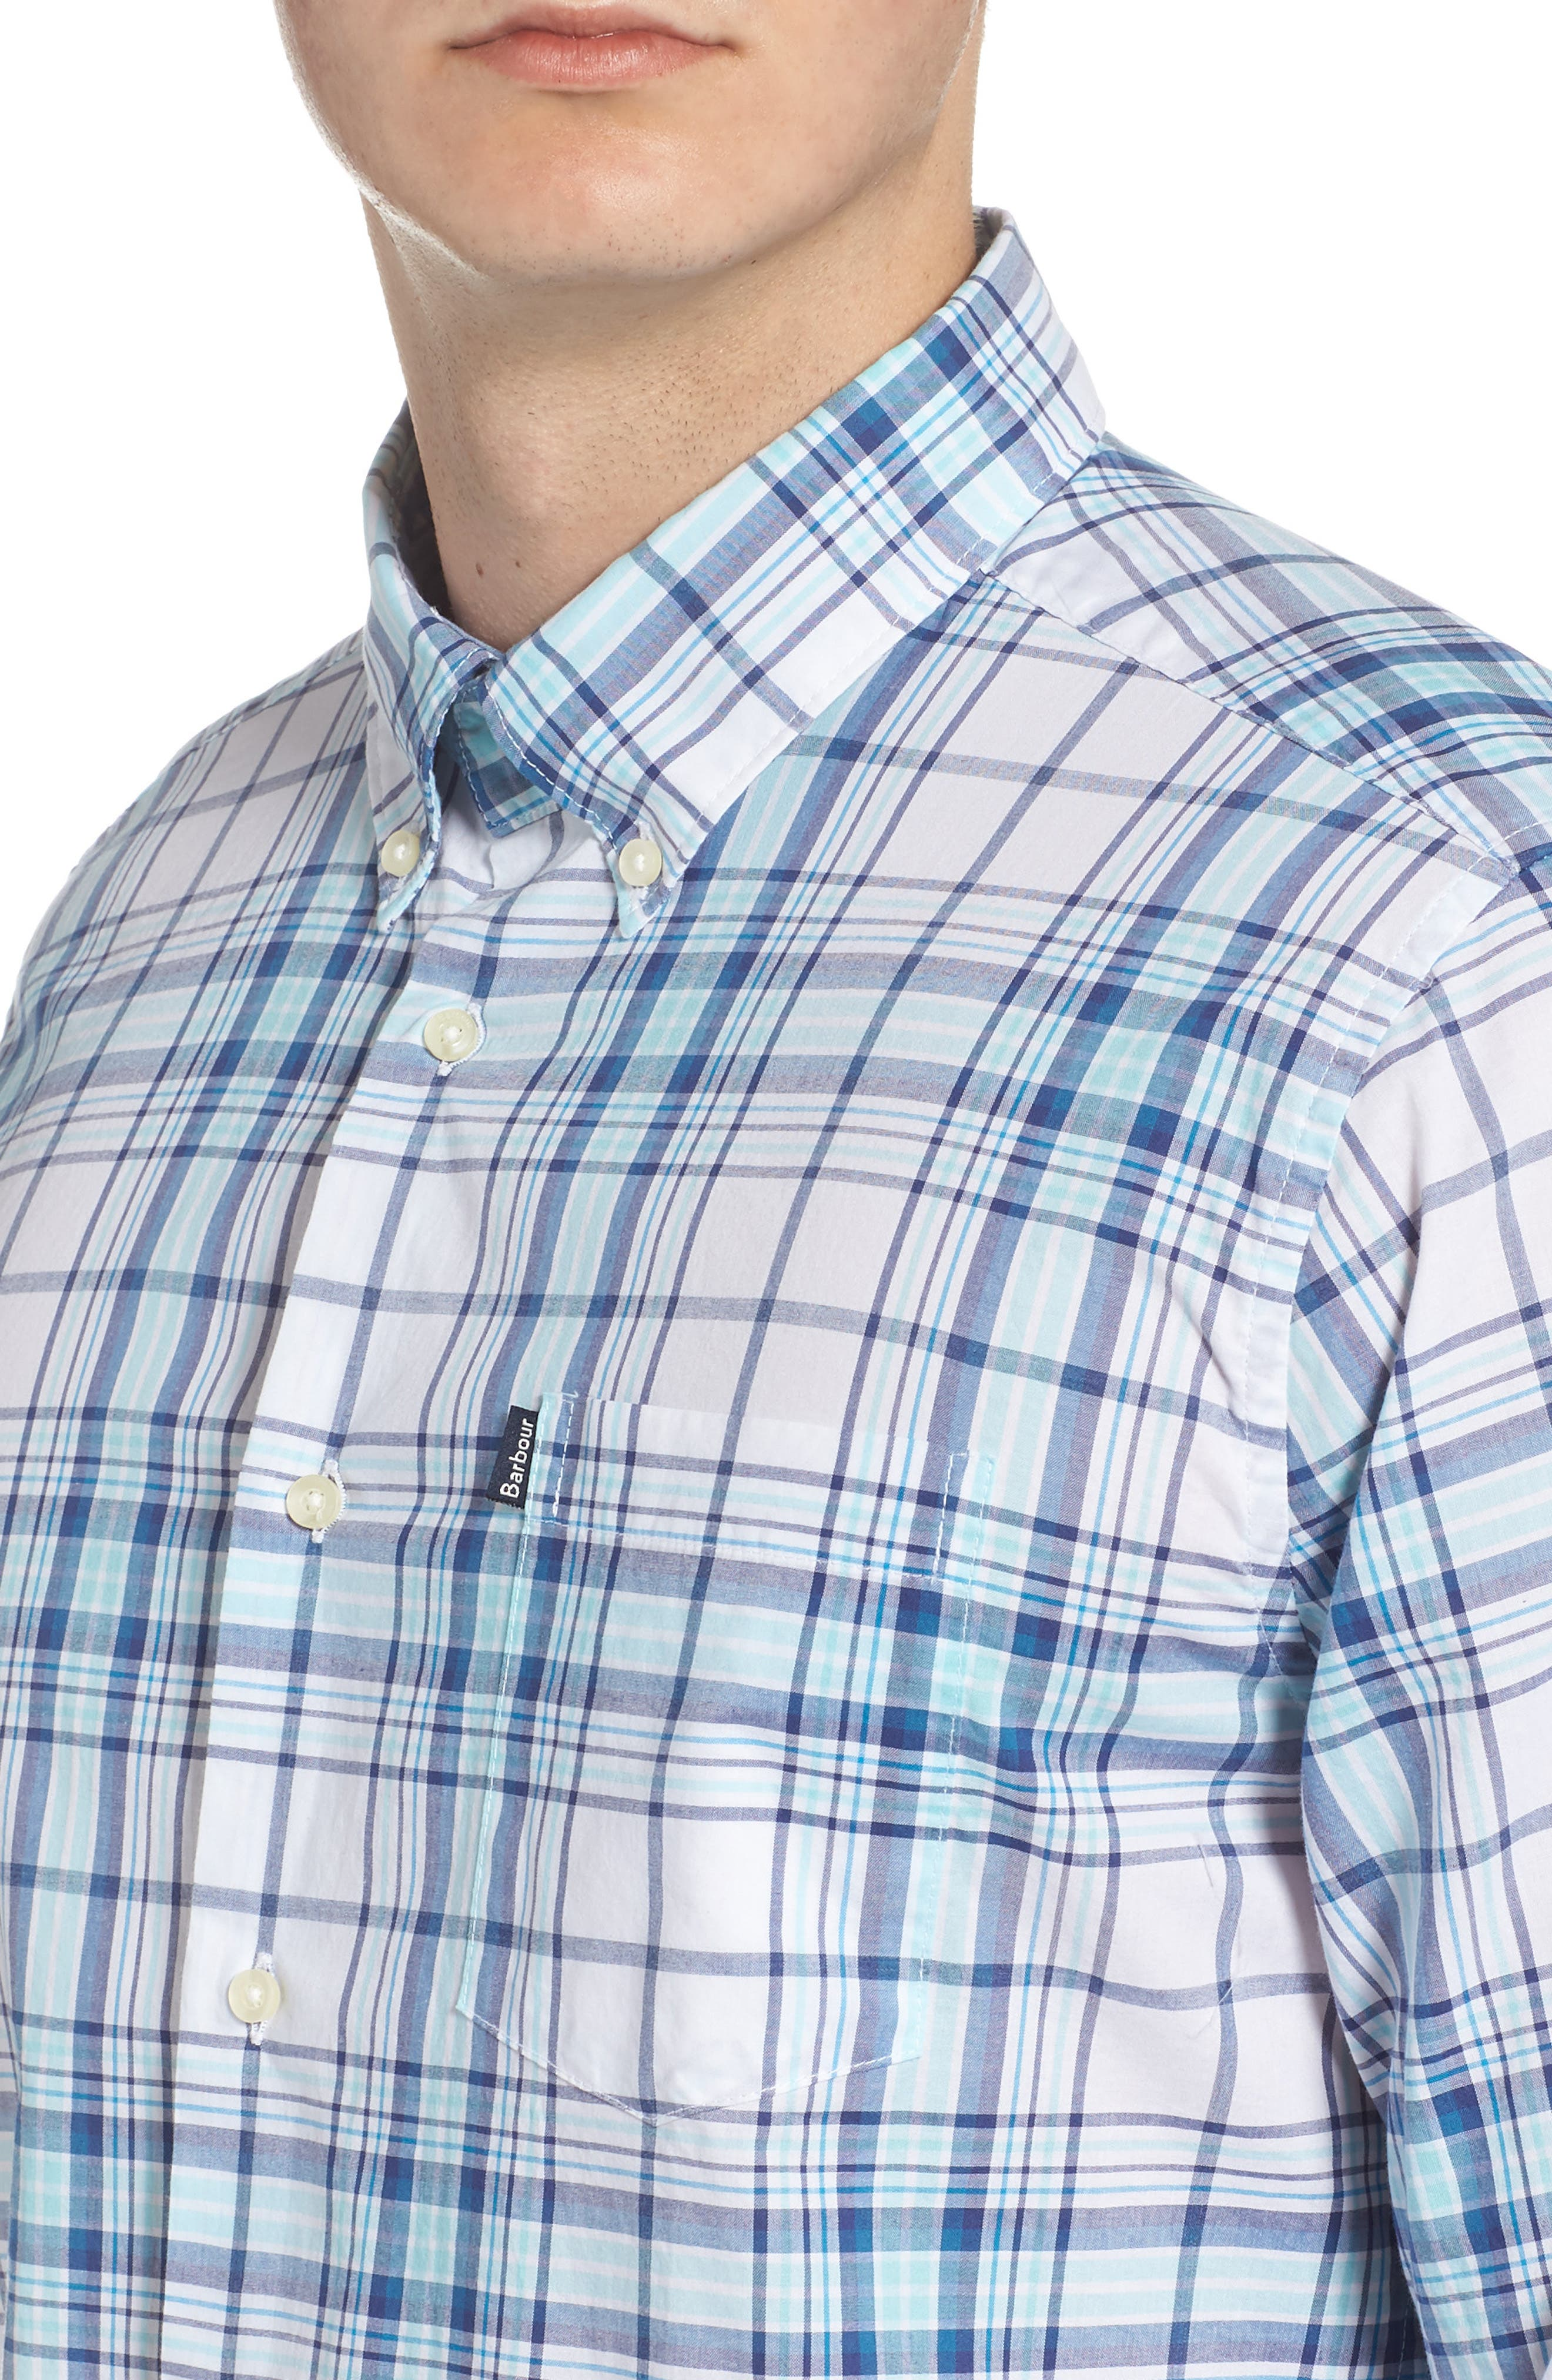 Christopher Tailored Fit Plaid Sport Shirt,                             Alternate thumbnail 2, color,                             440